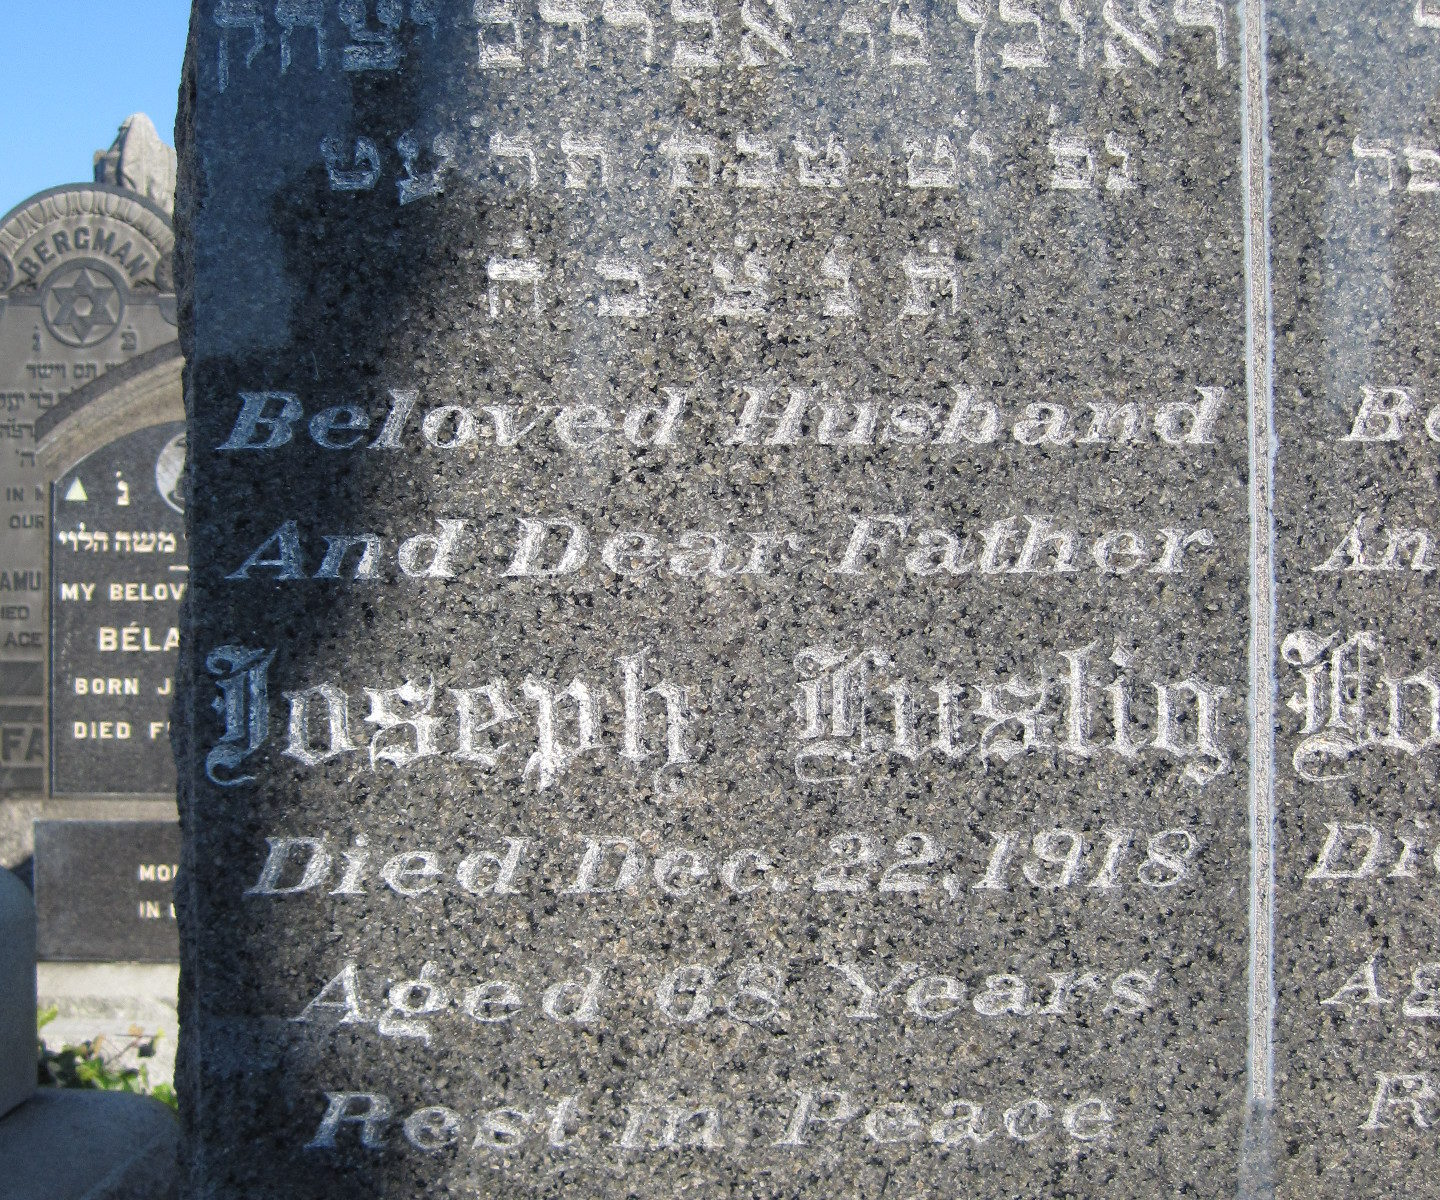 Lustig Archives - Cousinist: Family Tree and Genealogy